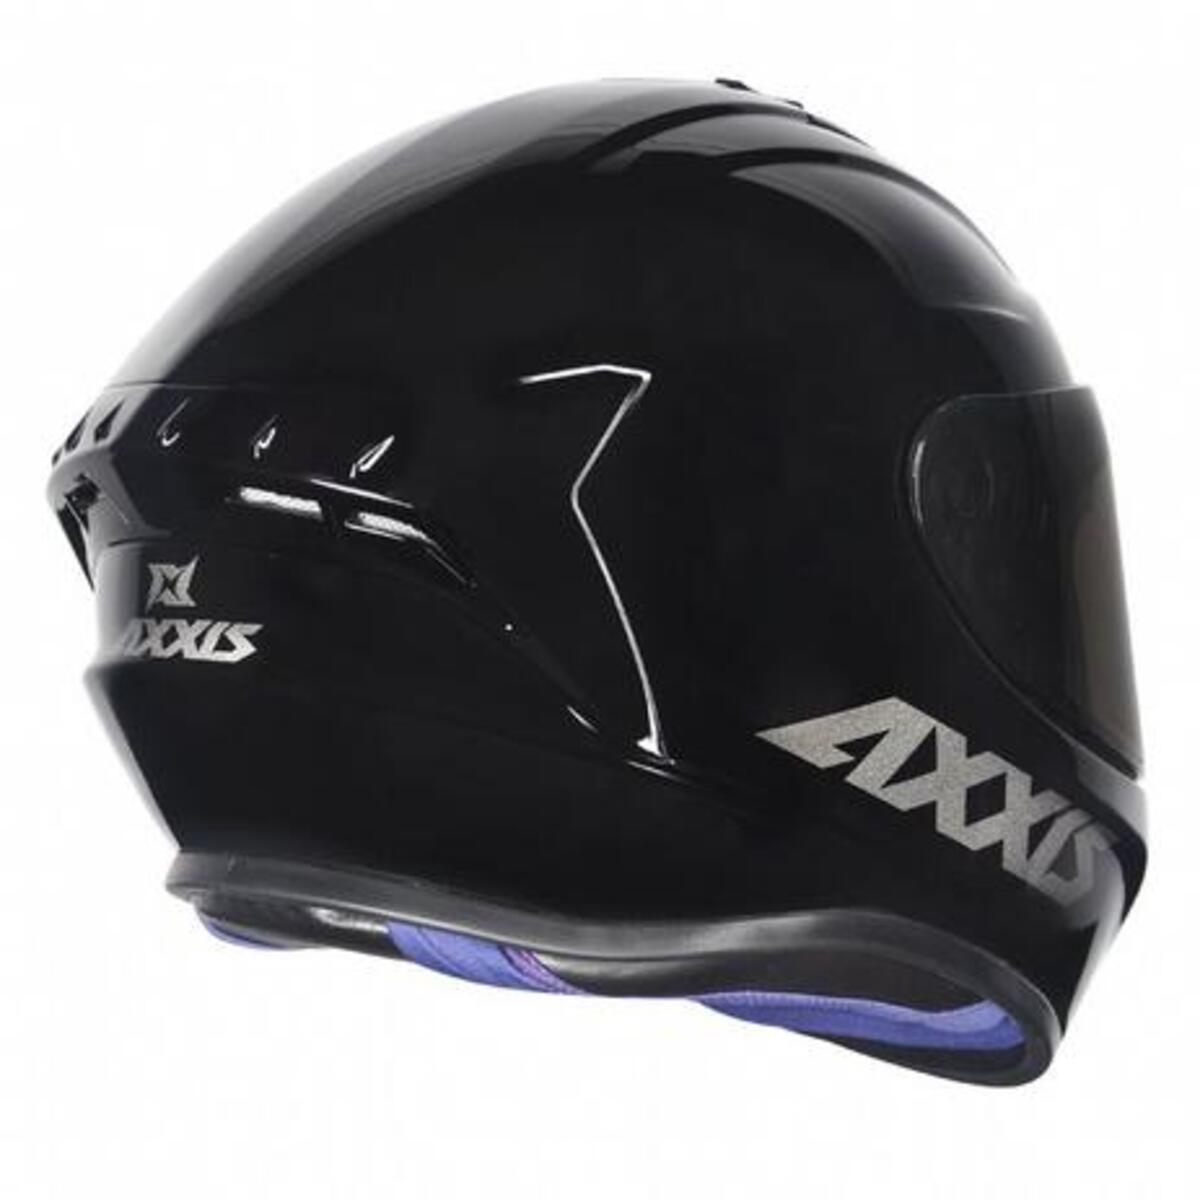 CAPACETE AXXIS DRAKEN SOLID GLOSS BLACK 62/XL